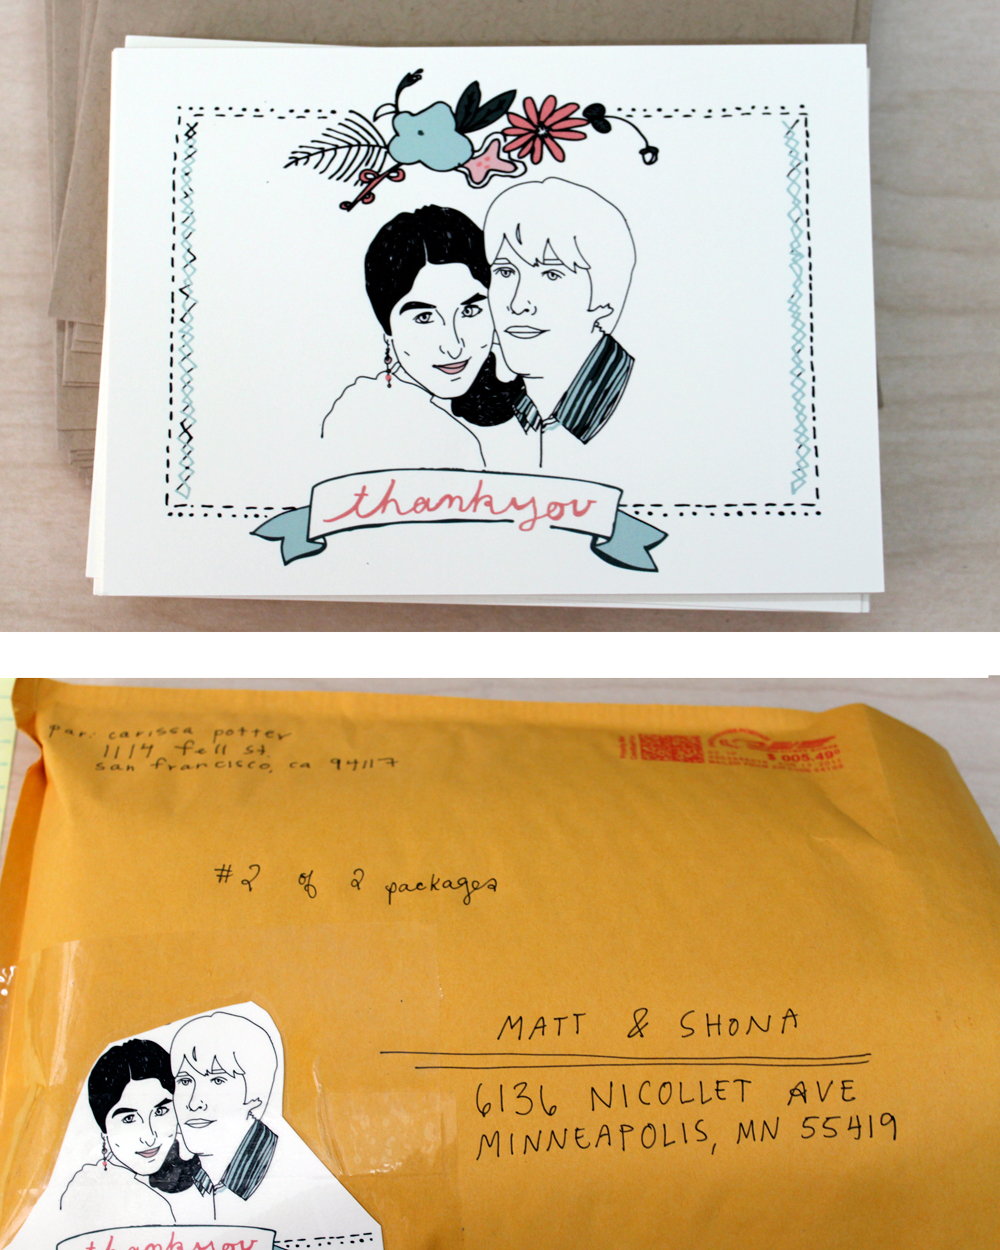 FINALLY GOT MATT AND SHONAS wedding gift off in the mail today…